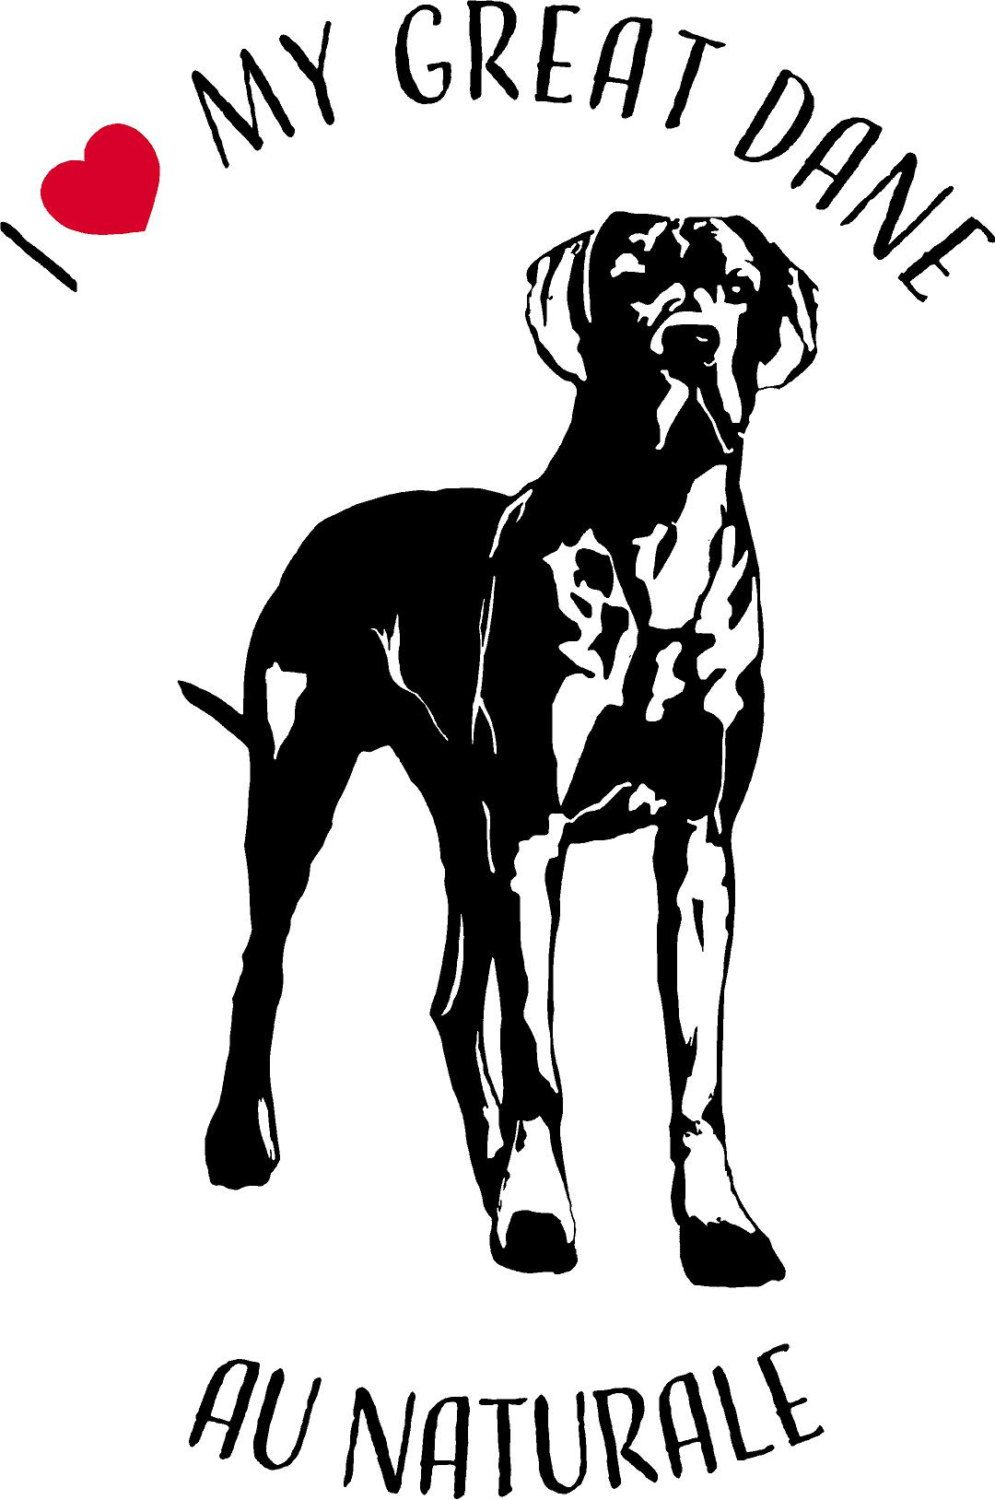 I Love My Great Dane Window Decal By Hoernercornercrafts On Etsy